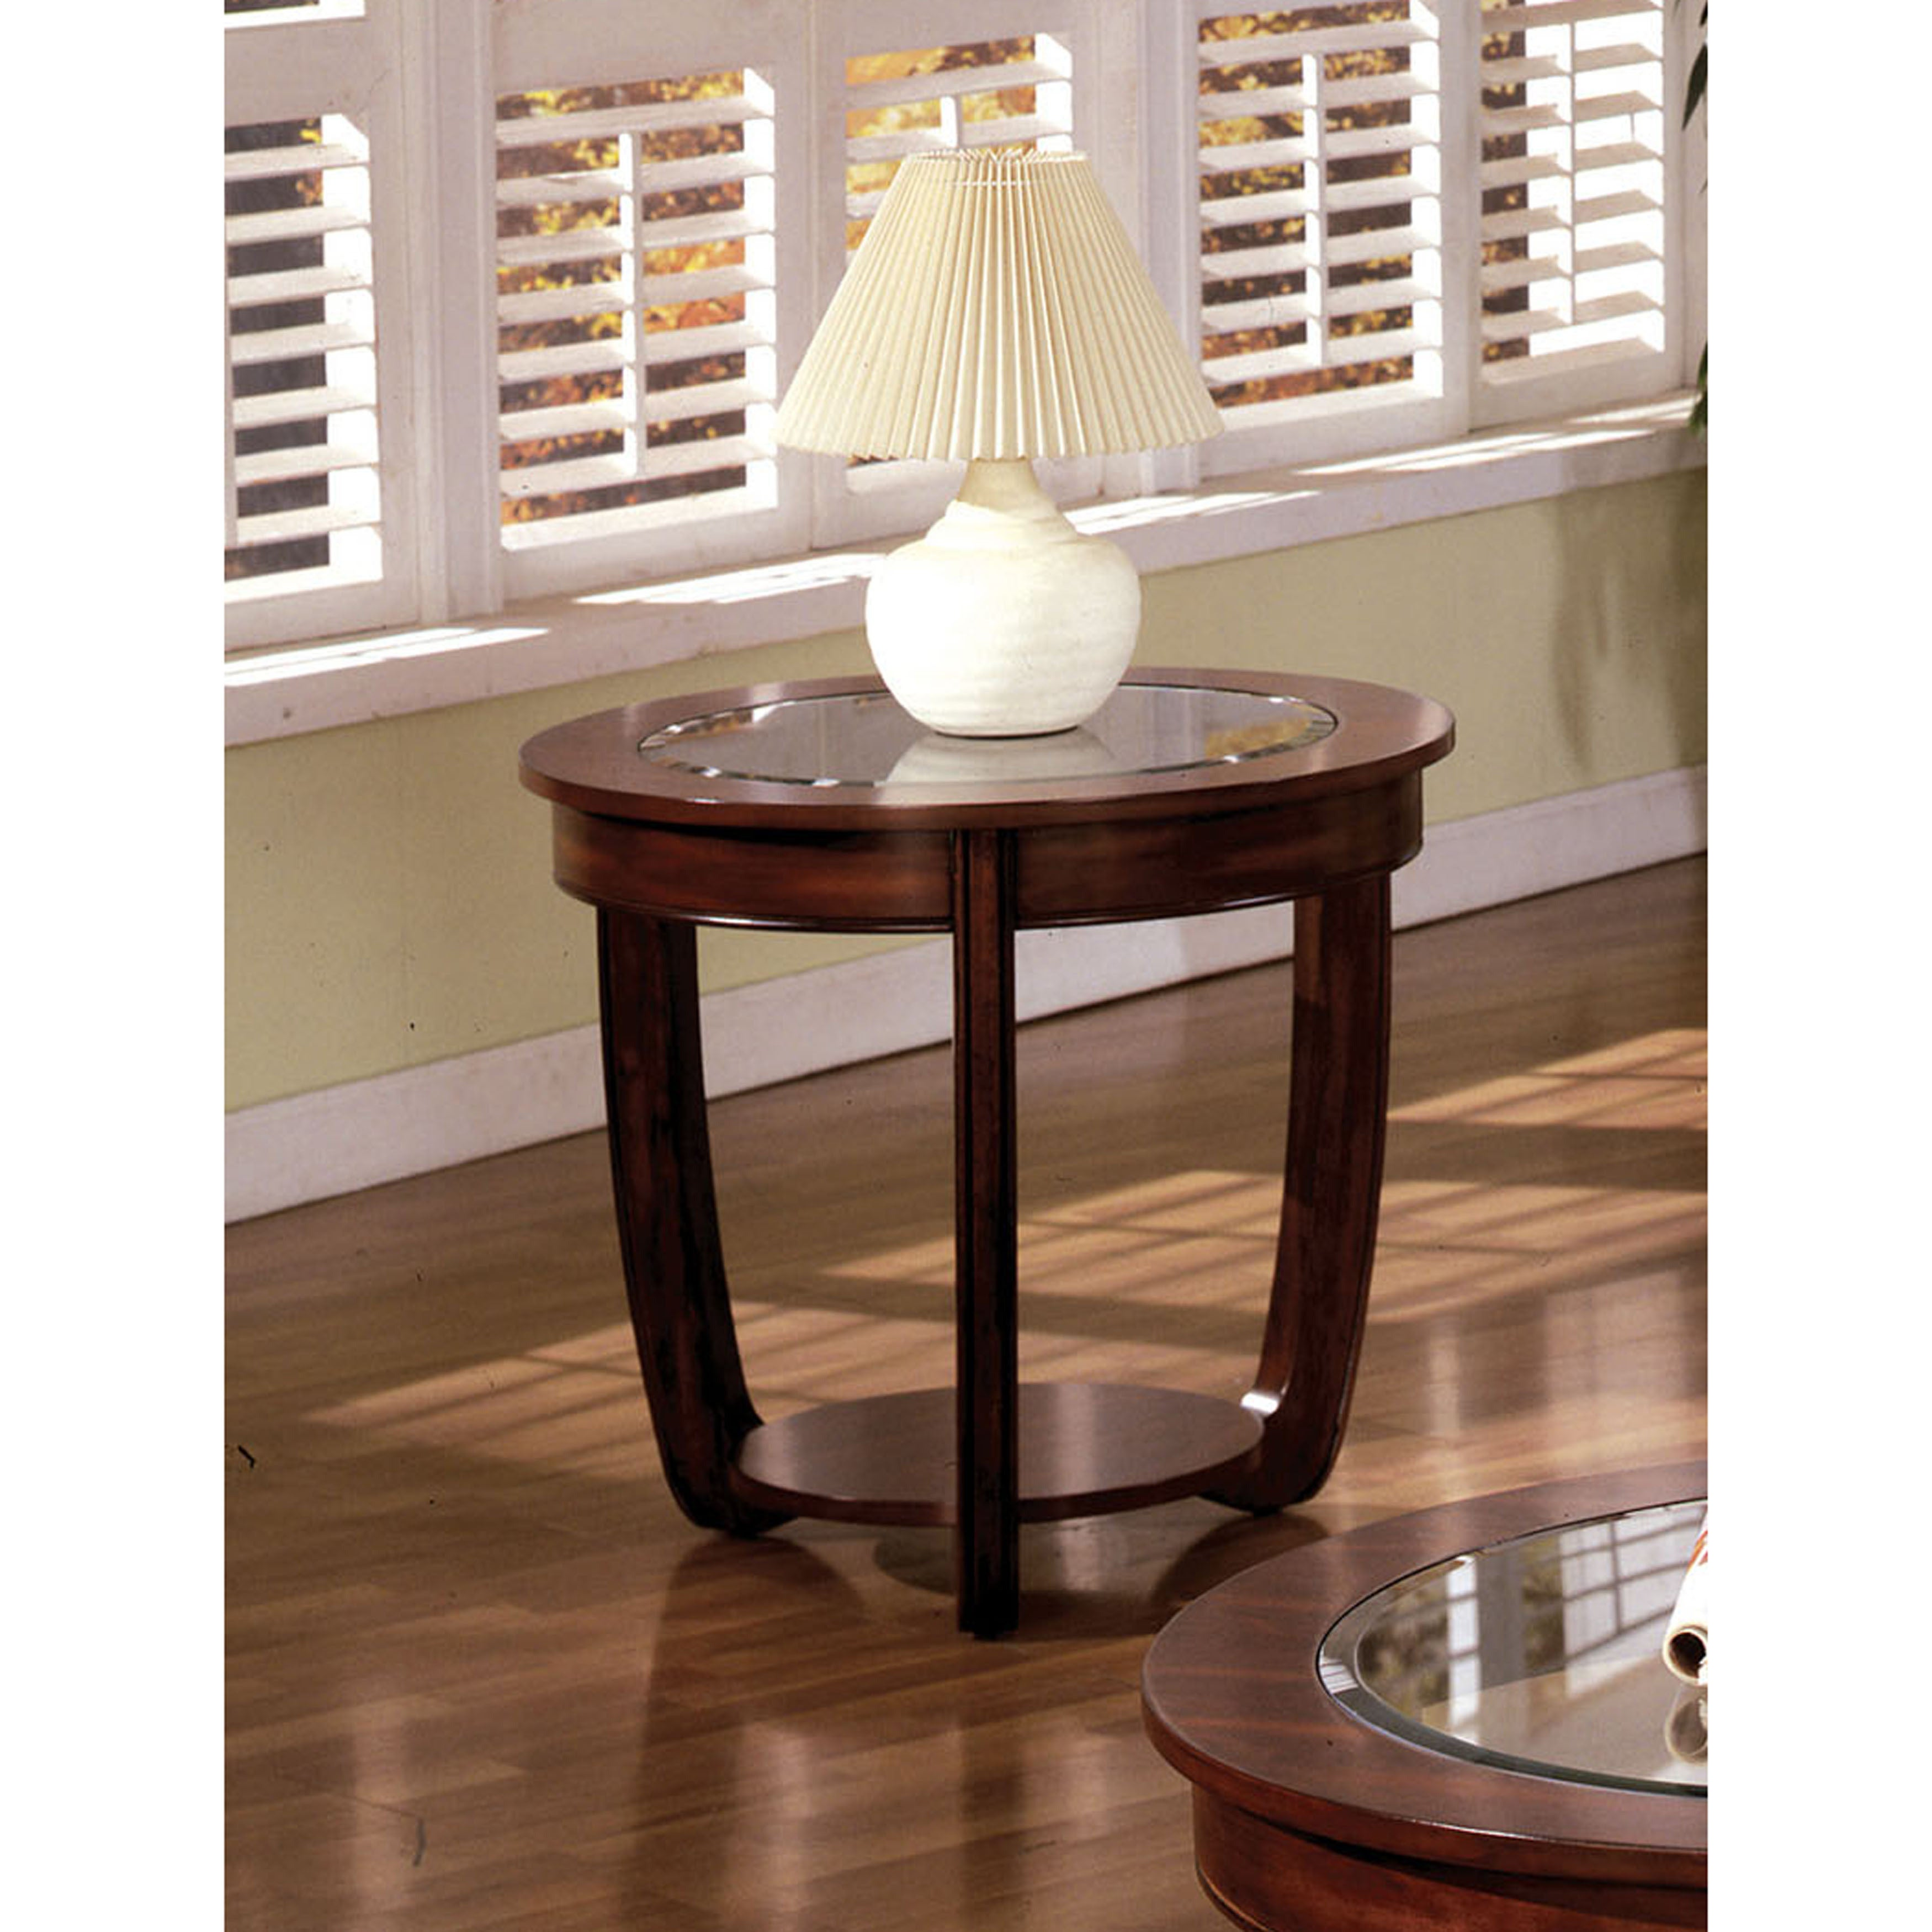 copper grove penstemon curved dark cherry end table free gracewood hollow eddings wood tables pipe desk and shelves metal half moon mfg furniture square gold small white lamp